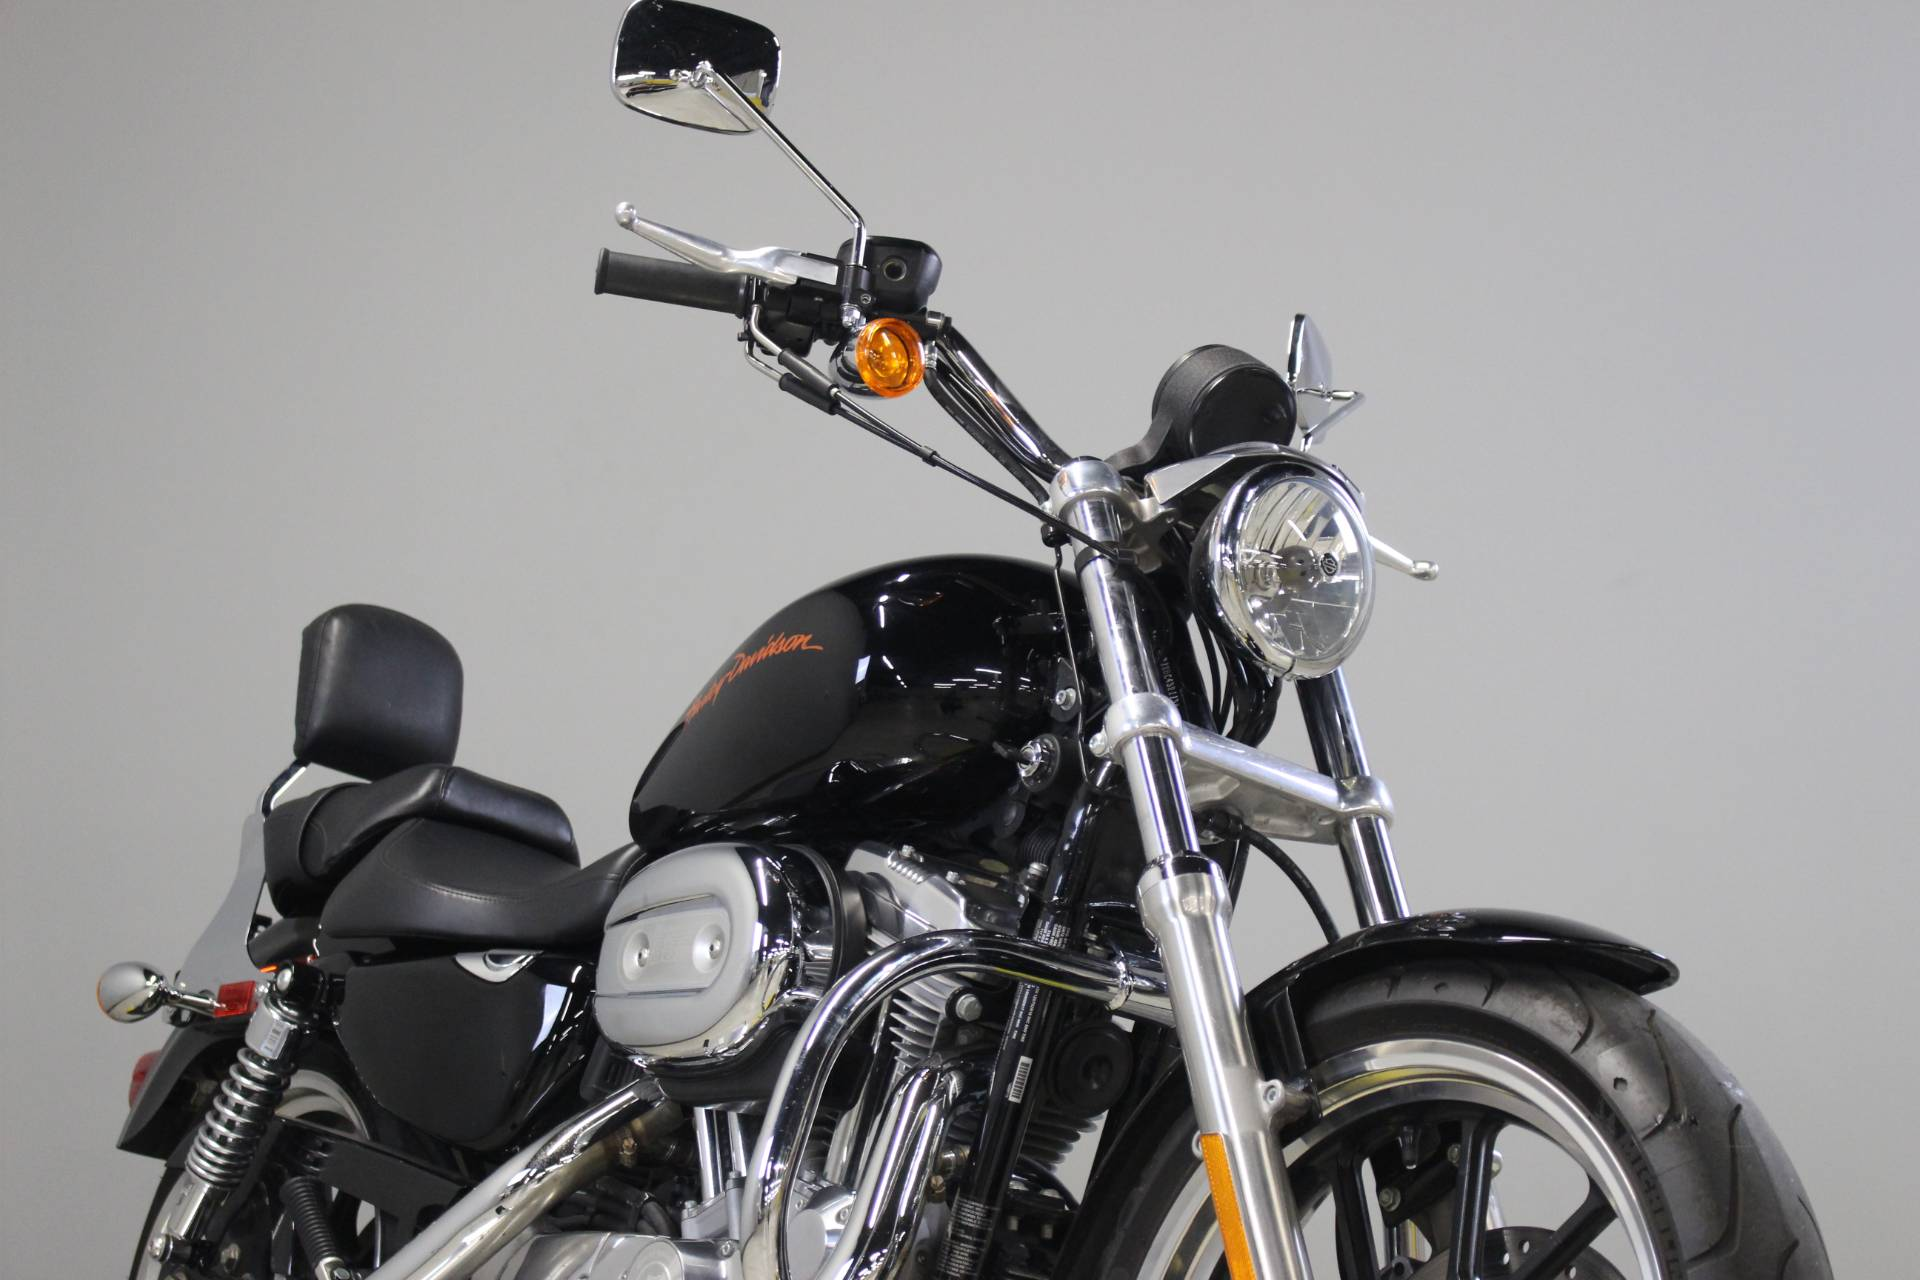 2011 Harley-Davidson Sportster® 883 SuperLow™ in Dubuque, Iowa - Photo 9